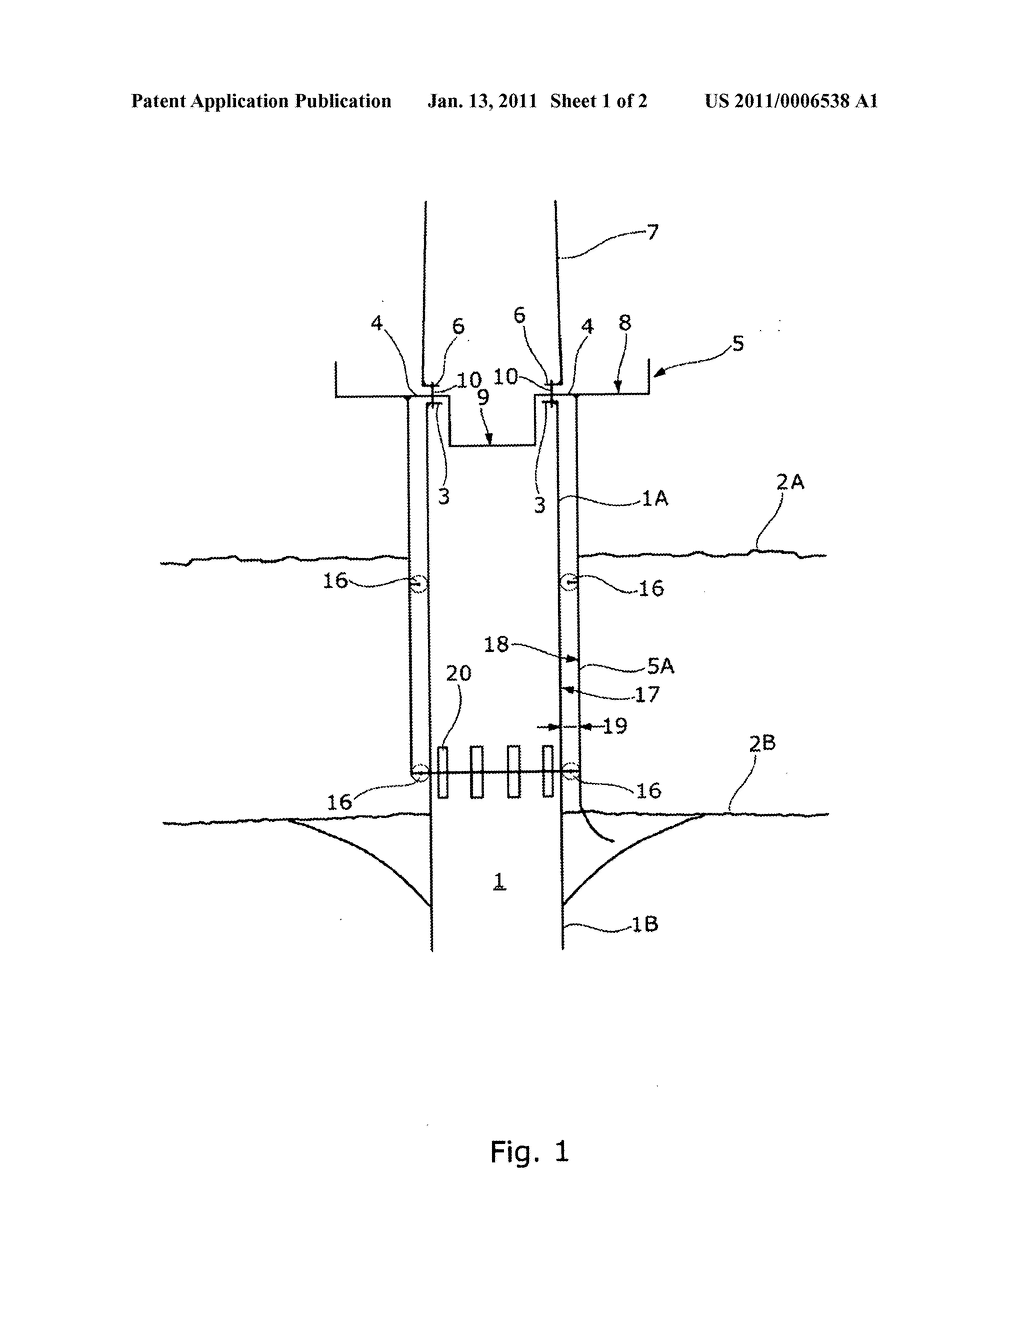 Wind Turbine Foundation Schematics Electrical Wiring Diagrams Charge Controller Schematic Monopile For Offshore Diagram